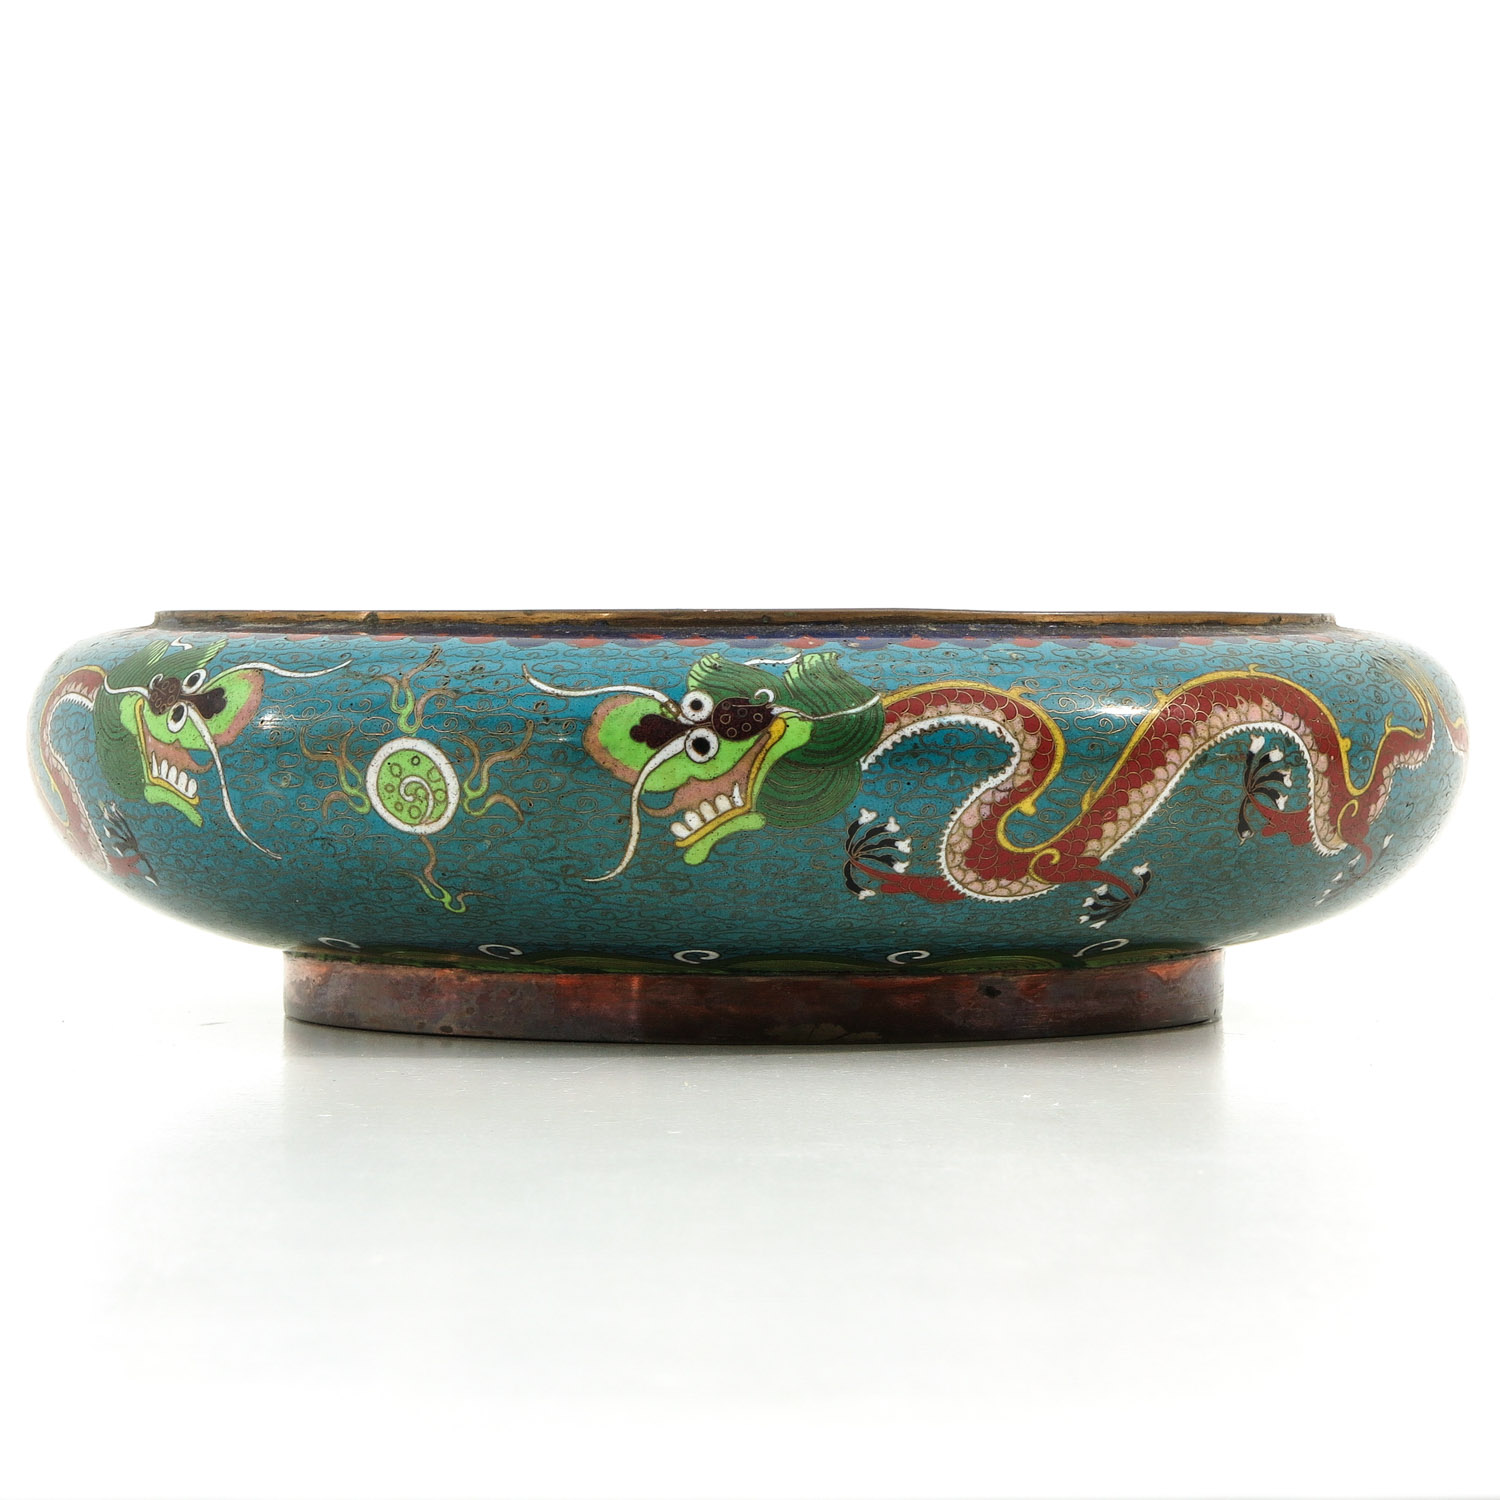 A Cloisonne Censer - Image 3 of 10